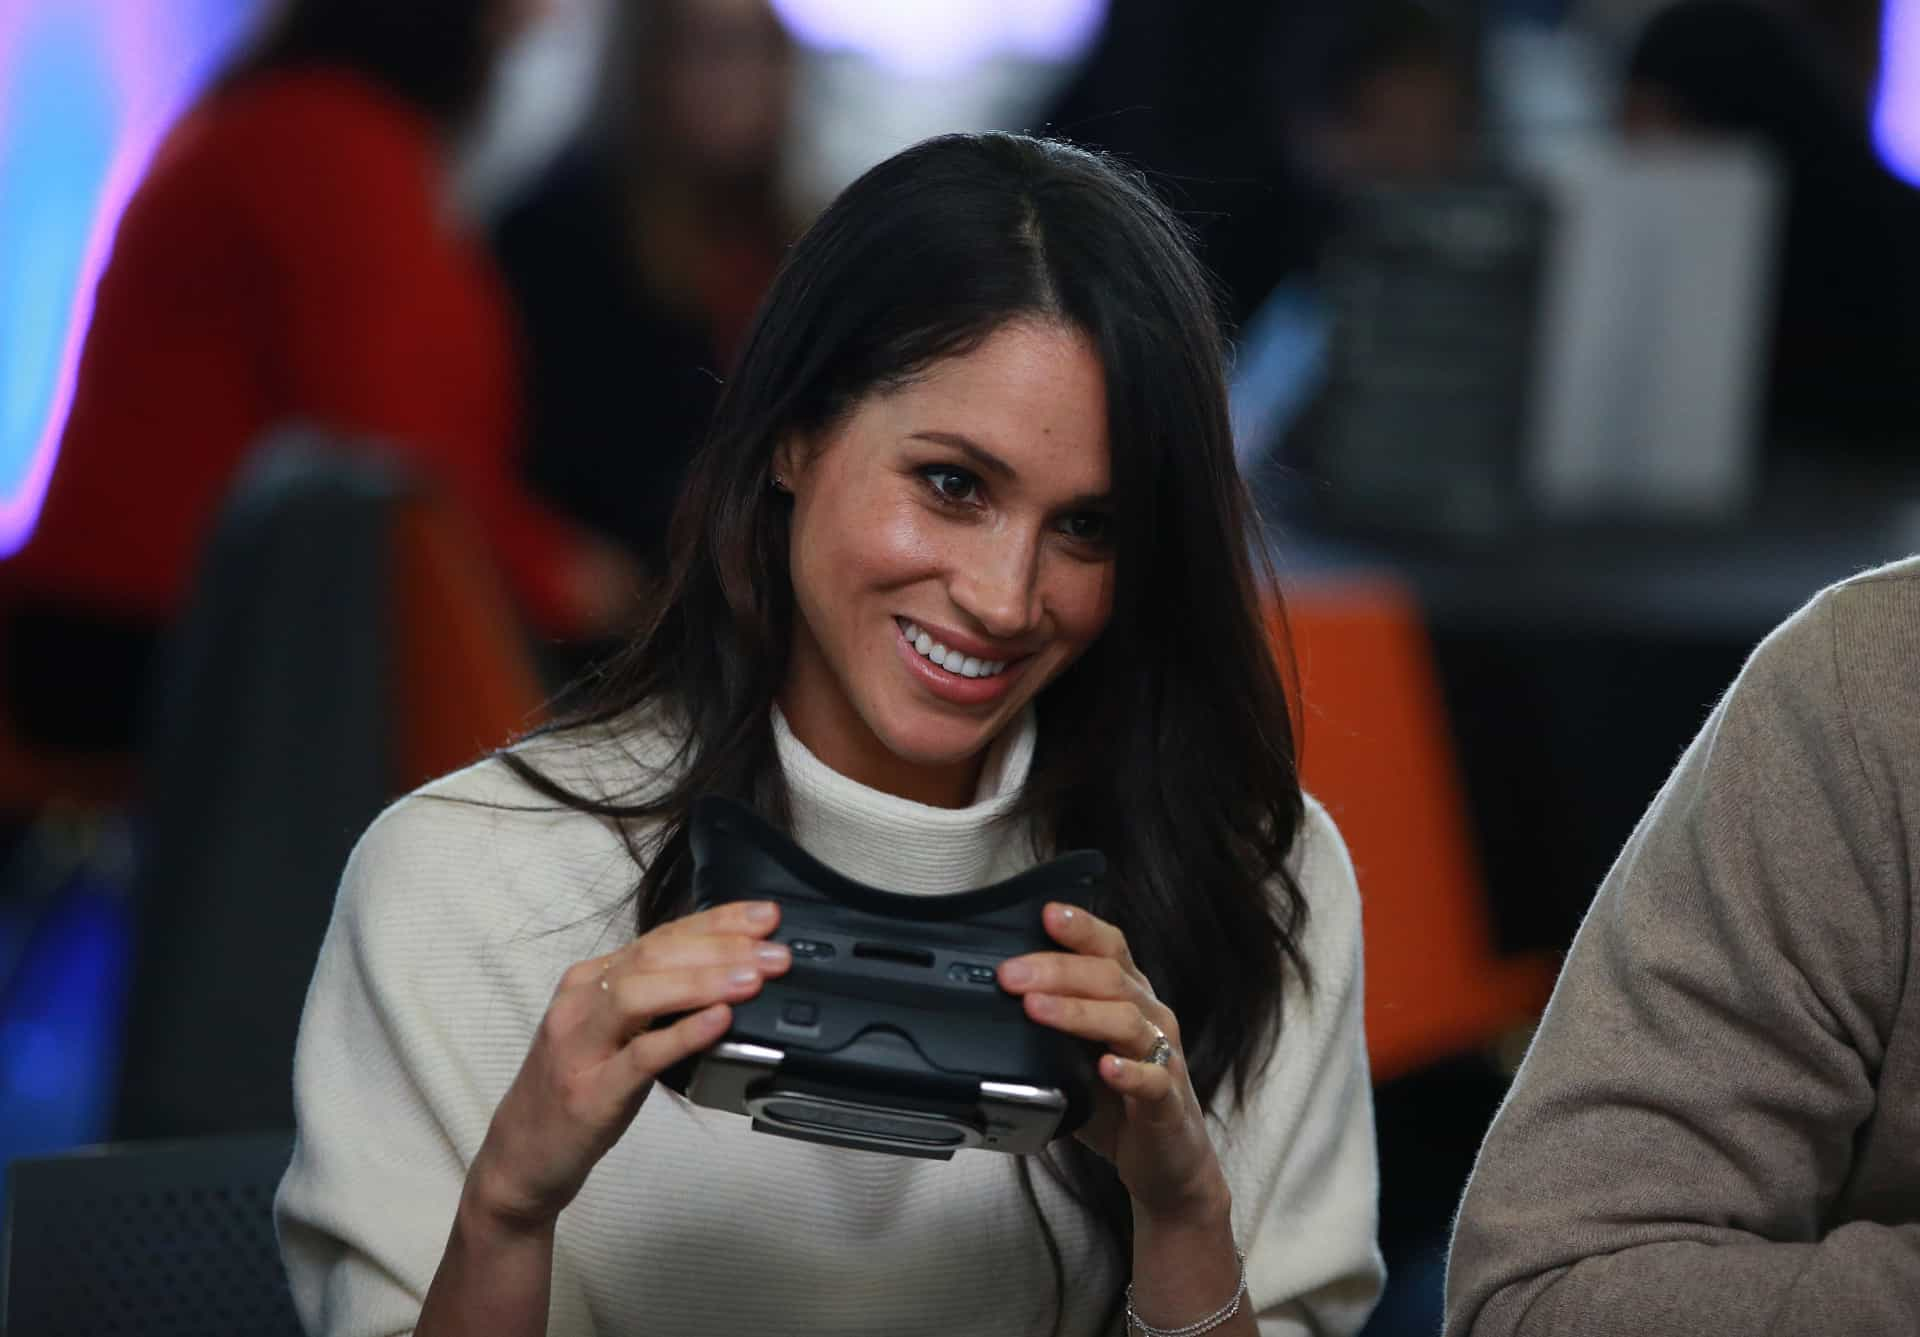 Meghan Markle: Bebé a bordo do comboio real